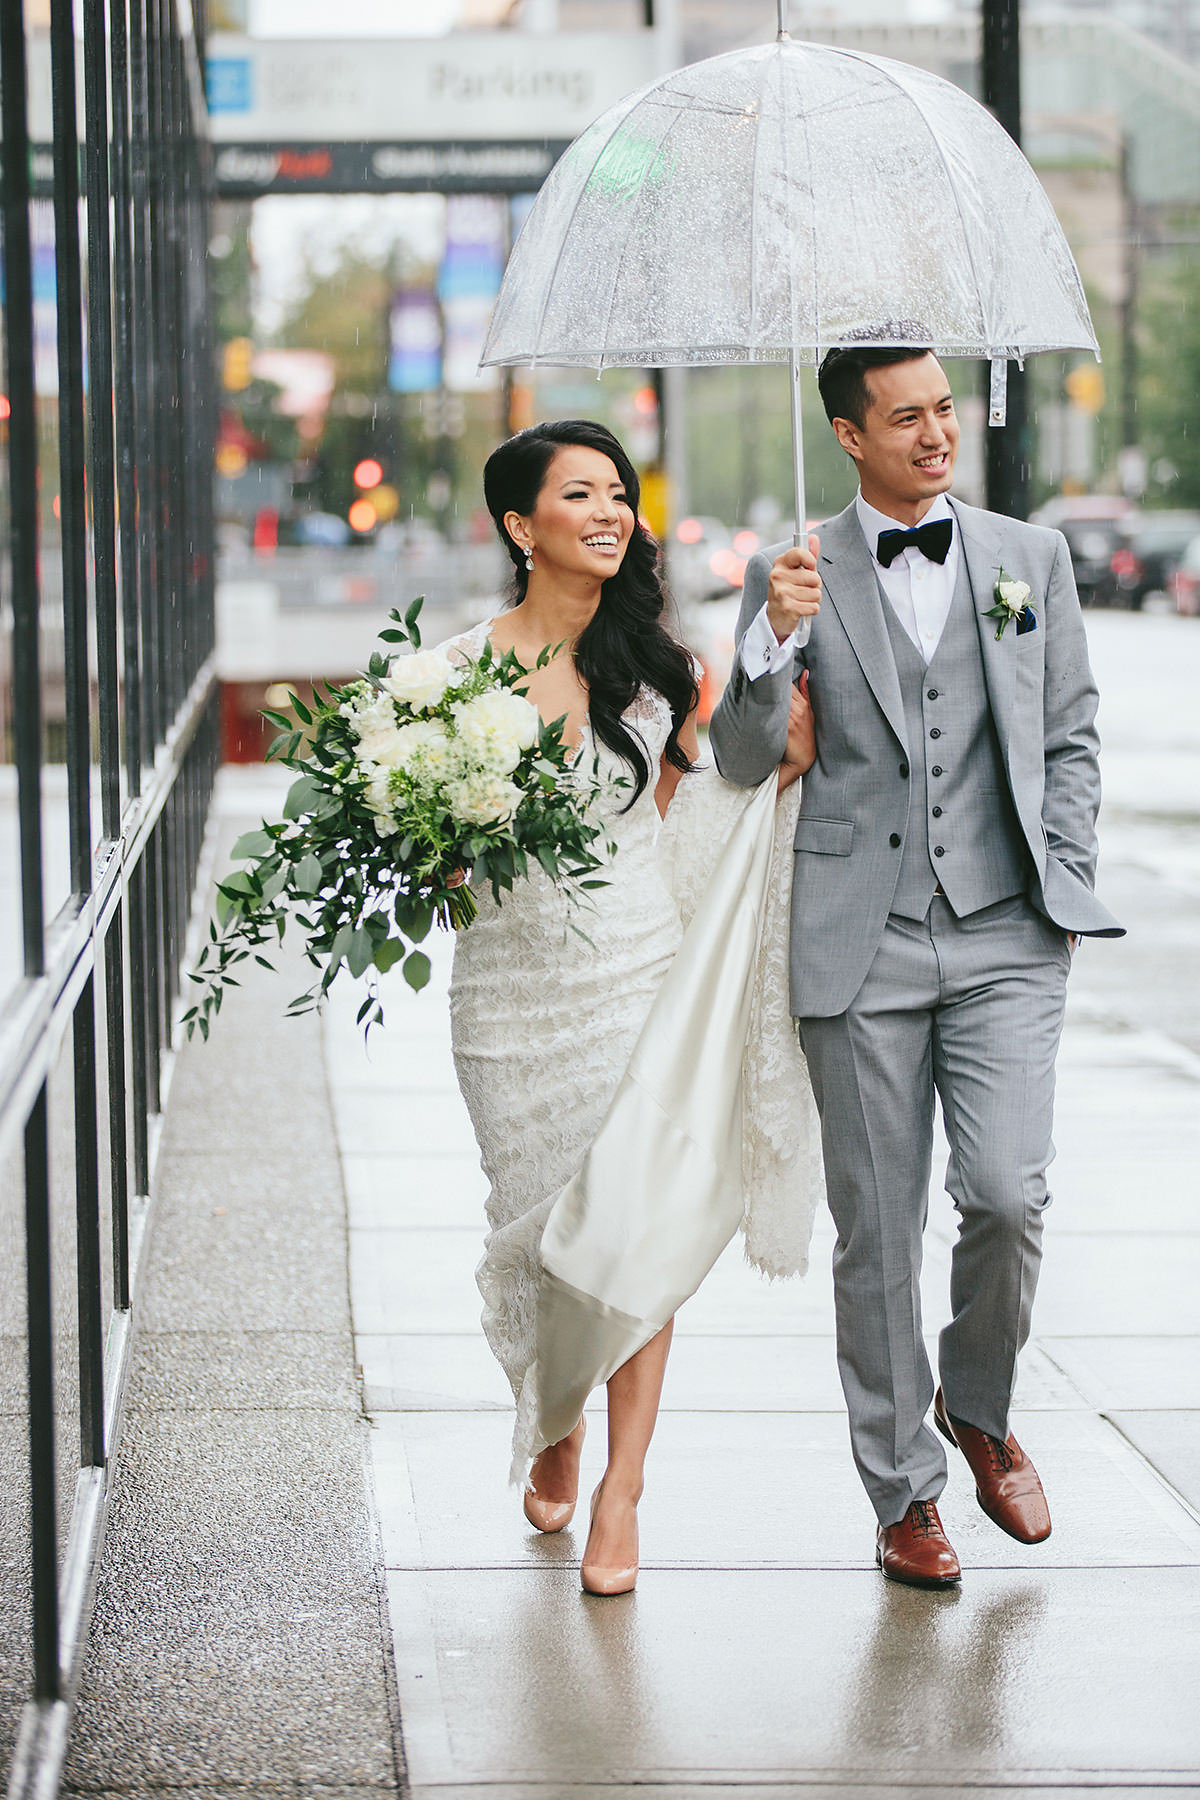 West Coast wedding Featuring Jewelry by Elsa Corsi